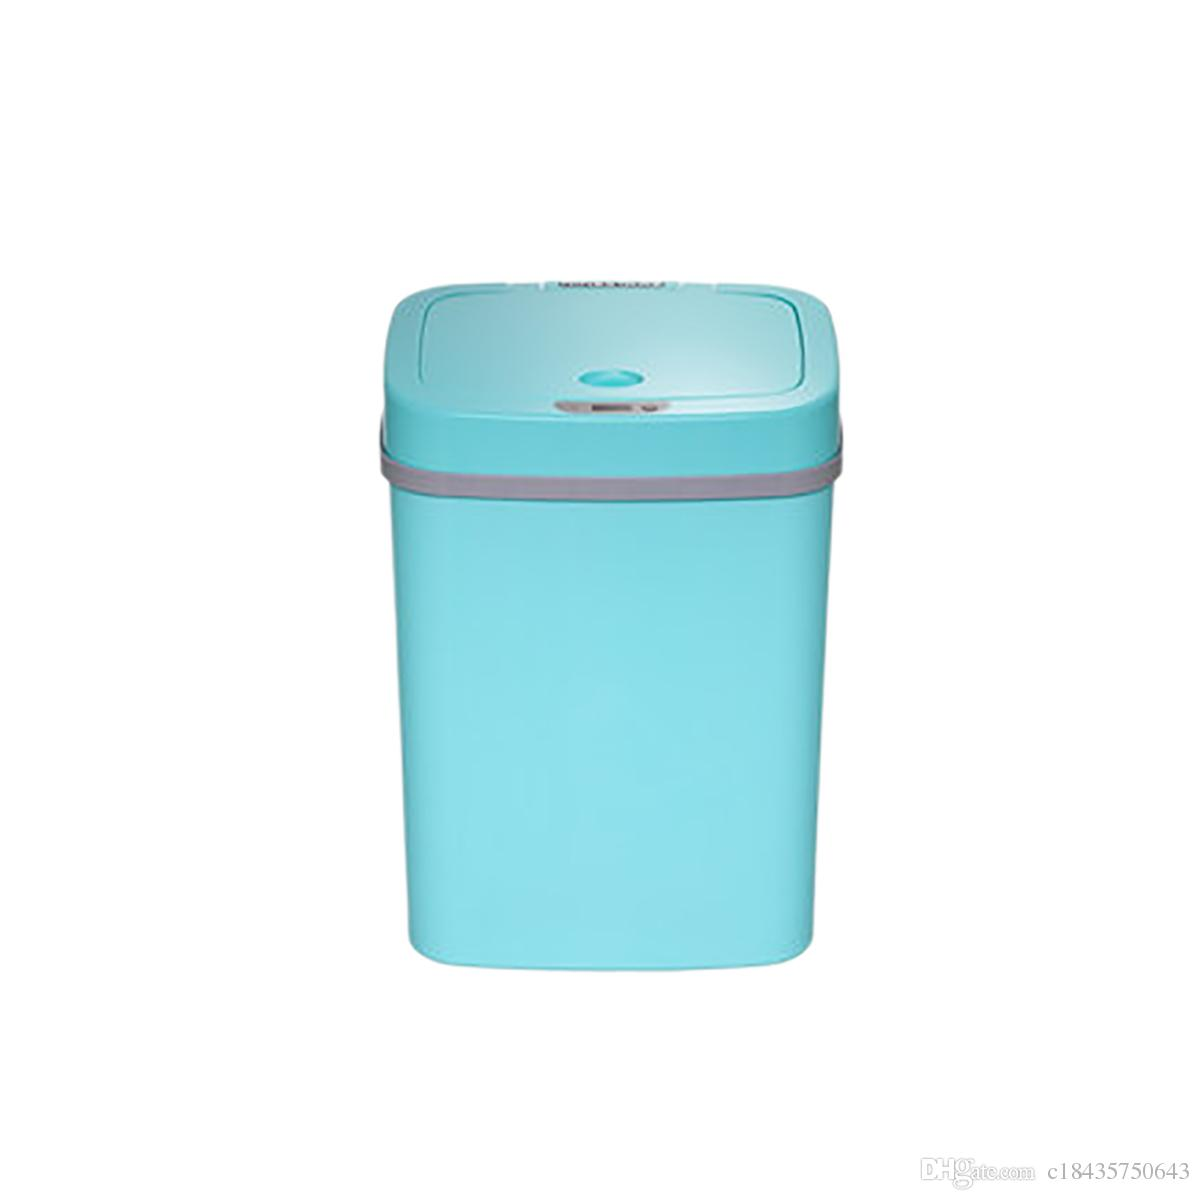 Garbage Bin 12l Automatic Trash Can Touchless Intelligent Induction Garbage Bin With Inner Bucket Contactless Circulator Quiet Lid Close Can Yellow